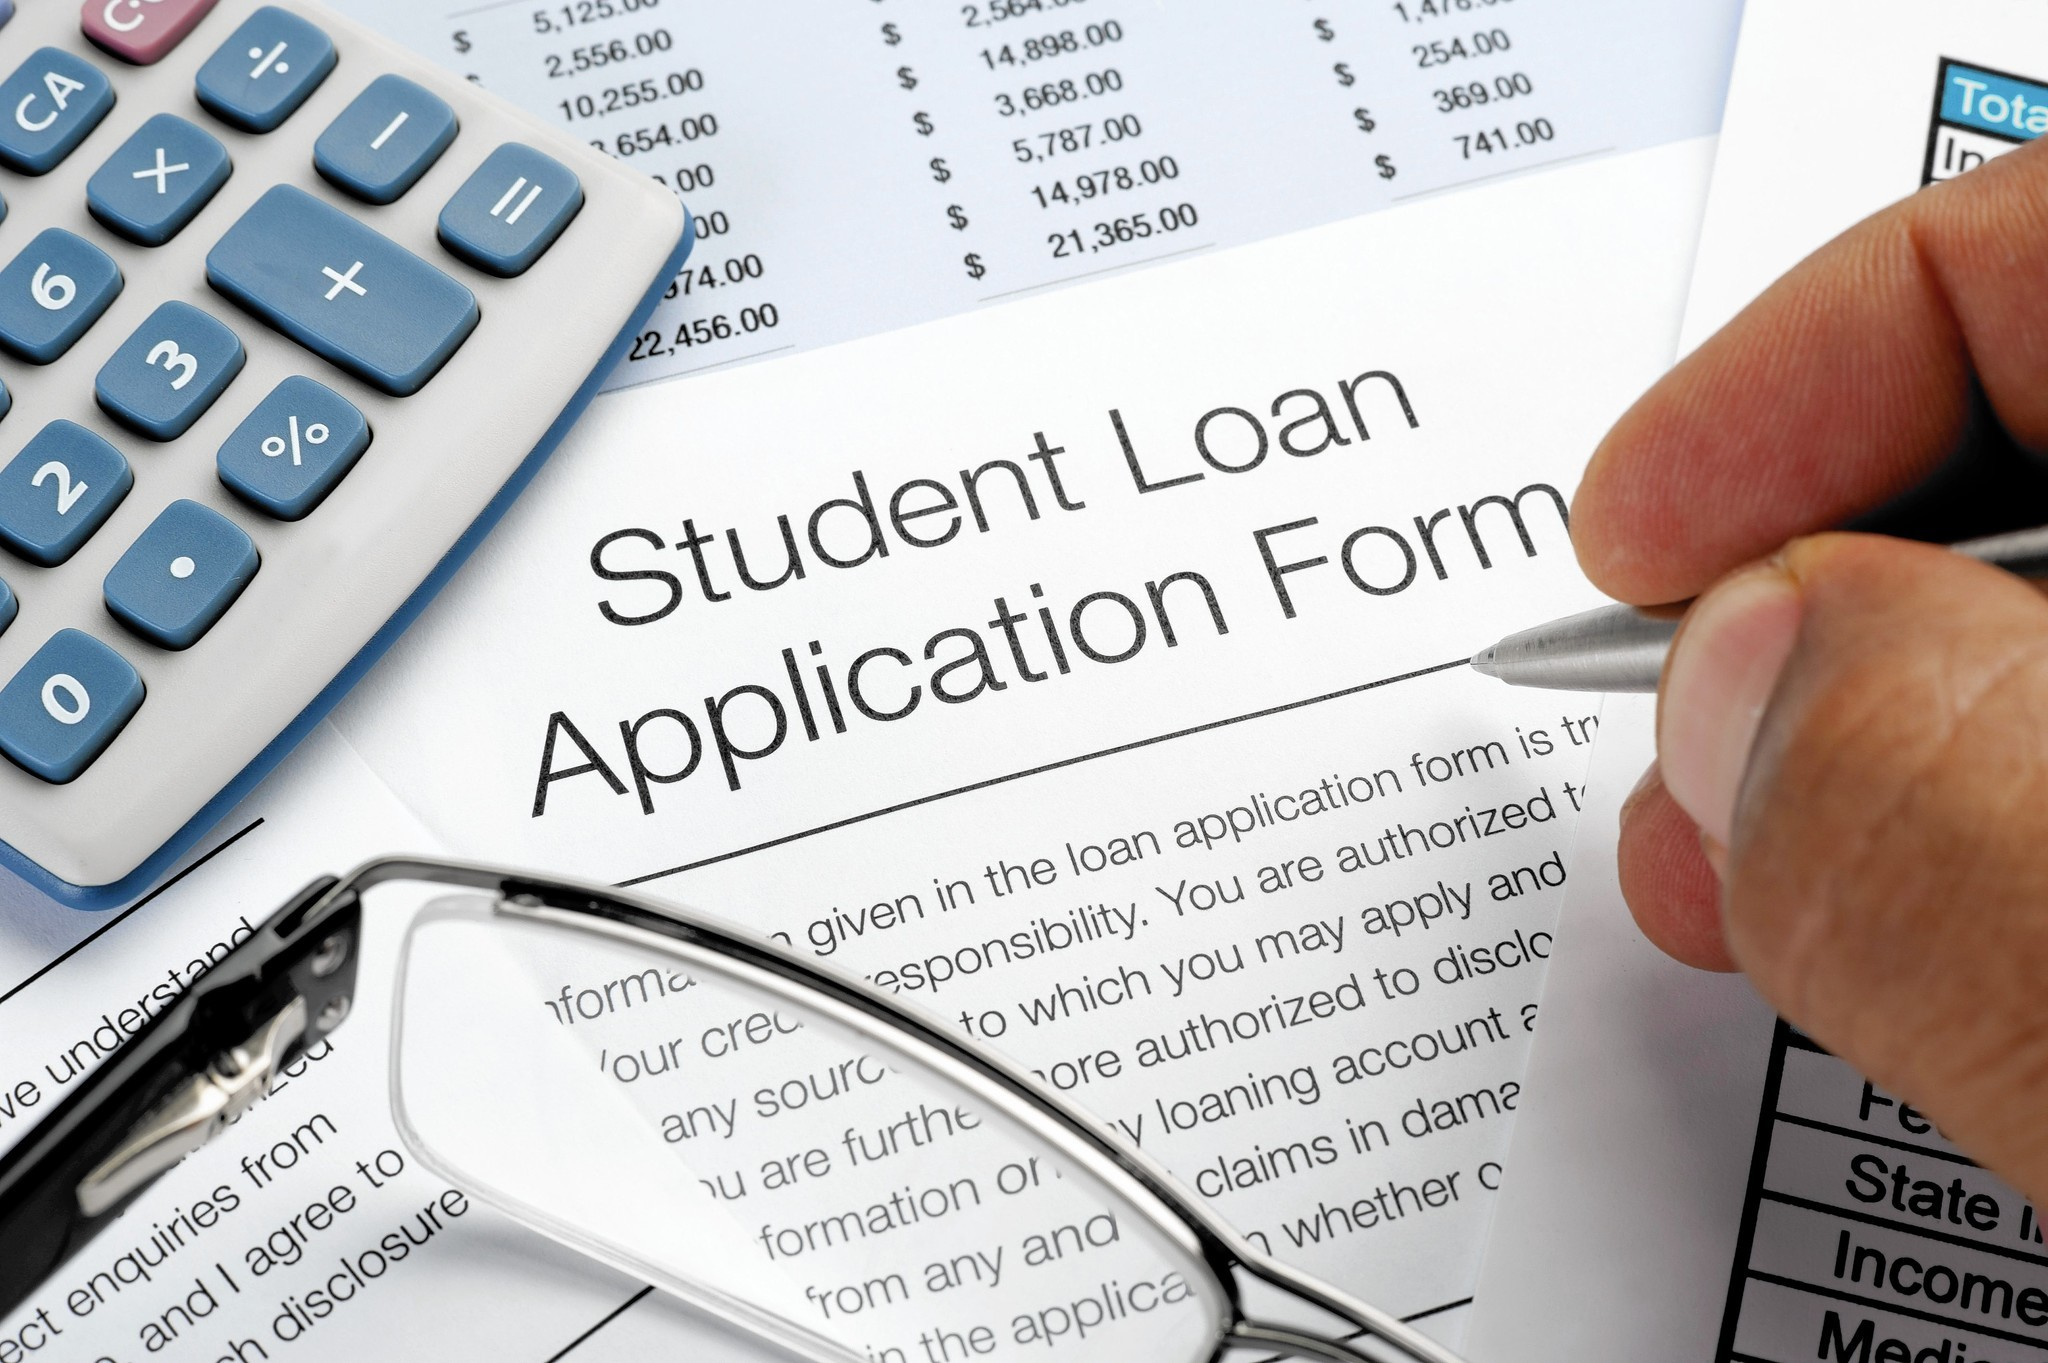 Student loan borrowers have options